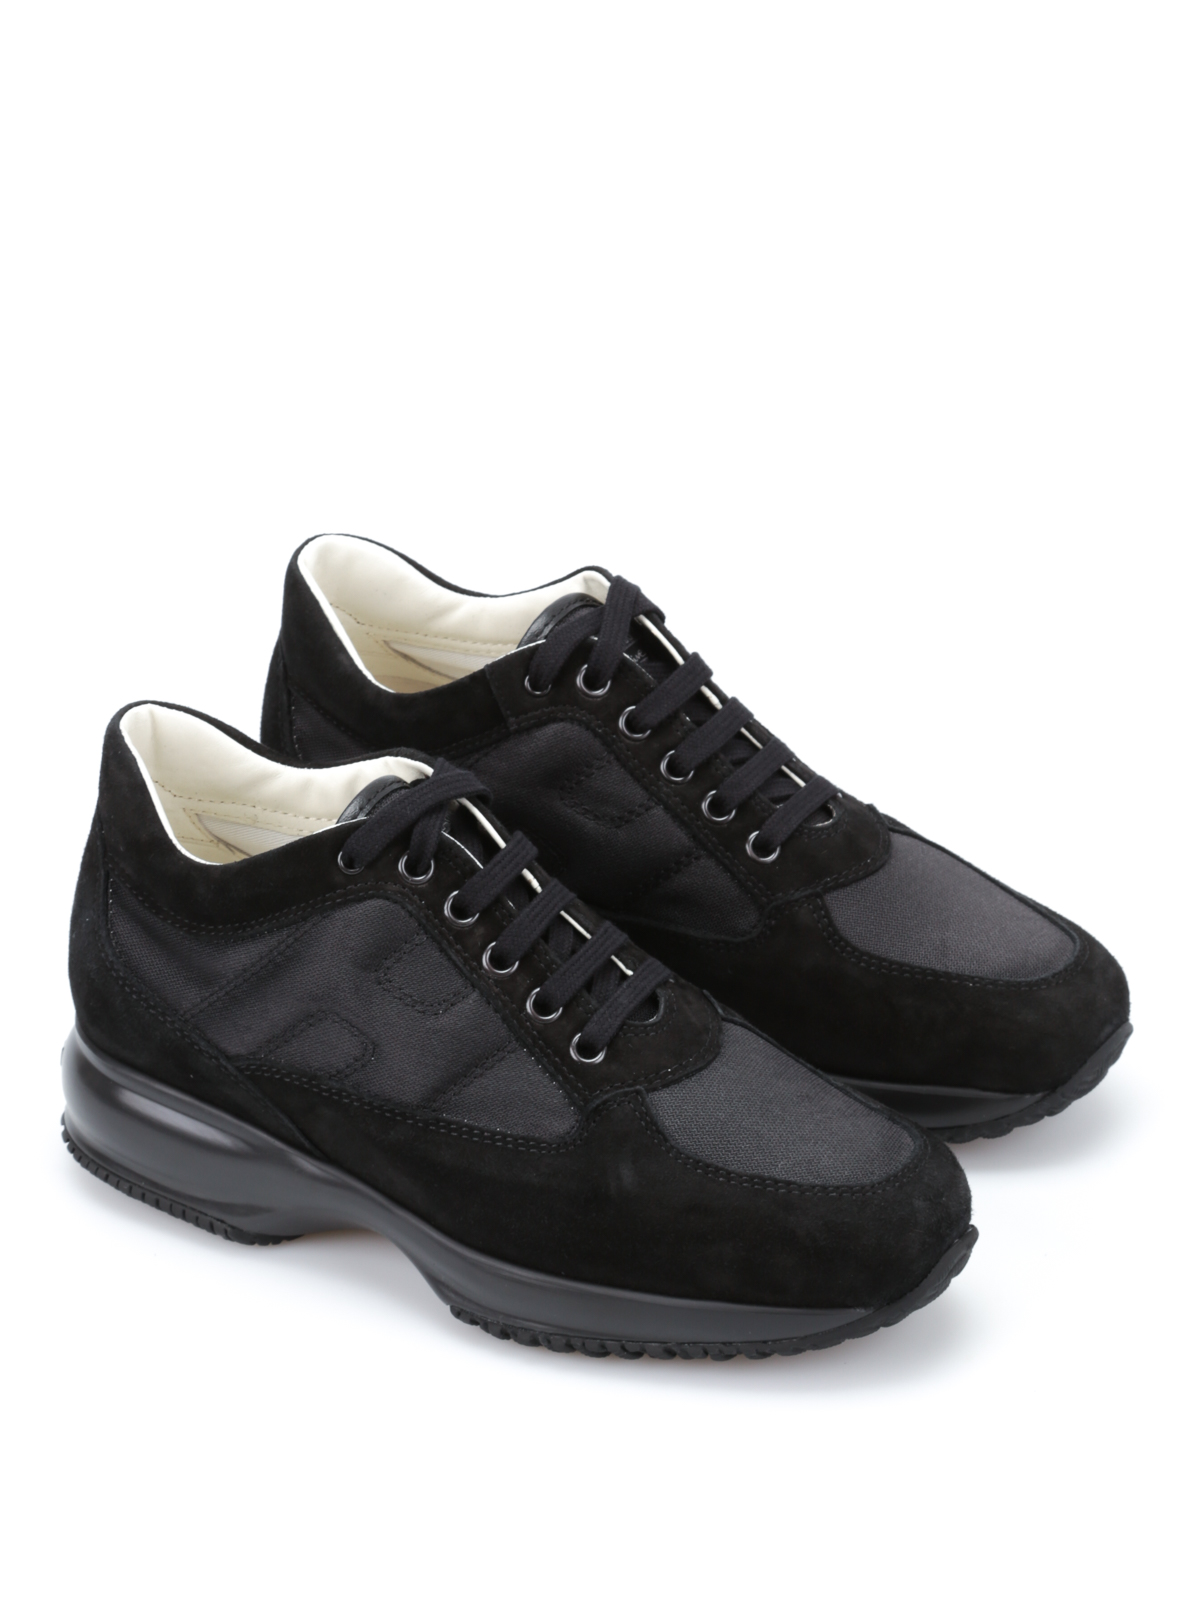 Hogan Shop Online Hogan Interactive Sneakers Hxw00n00e10sg2 9997